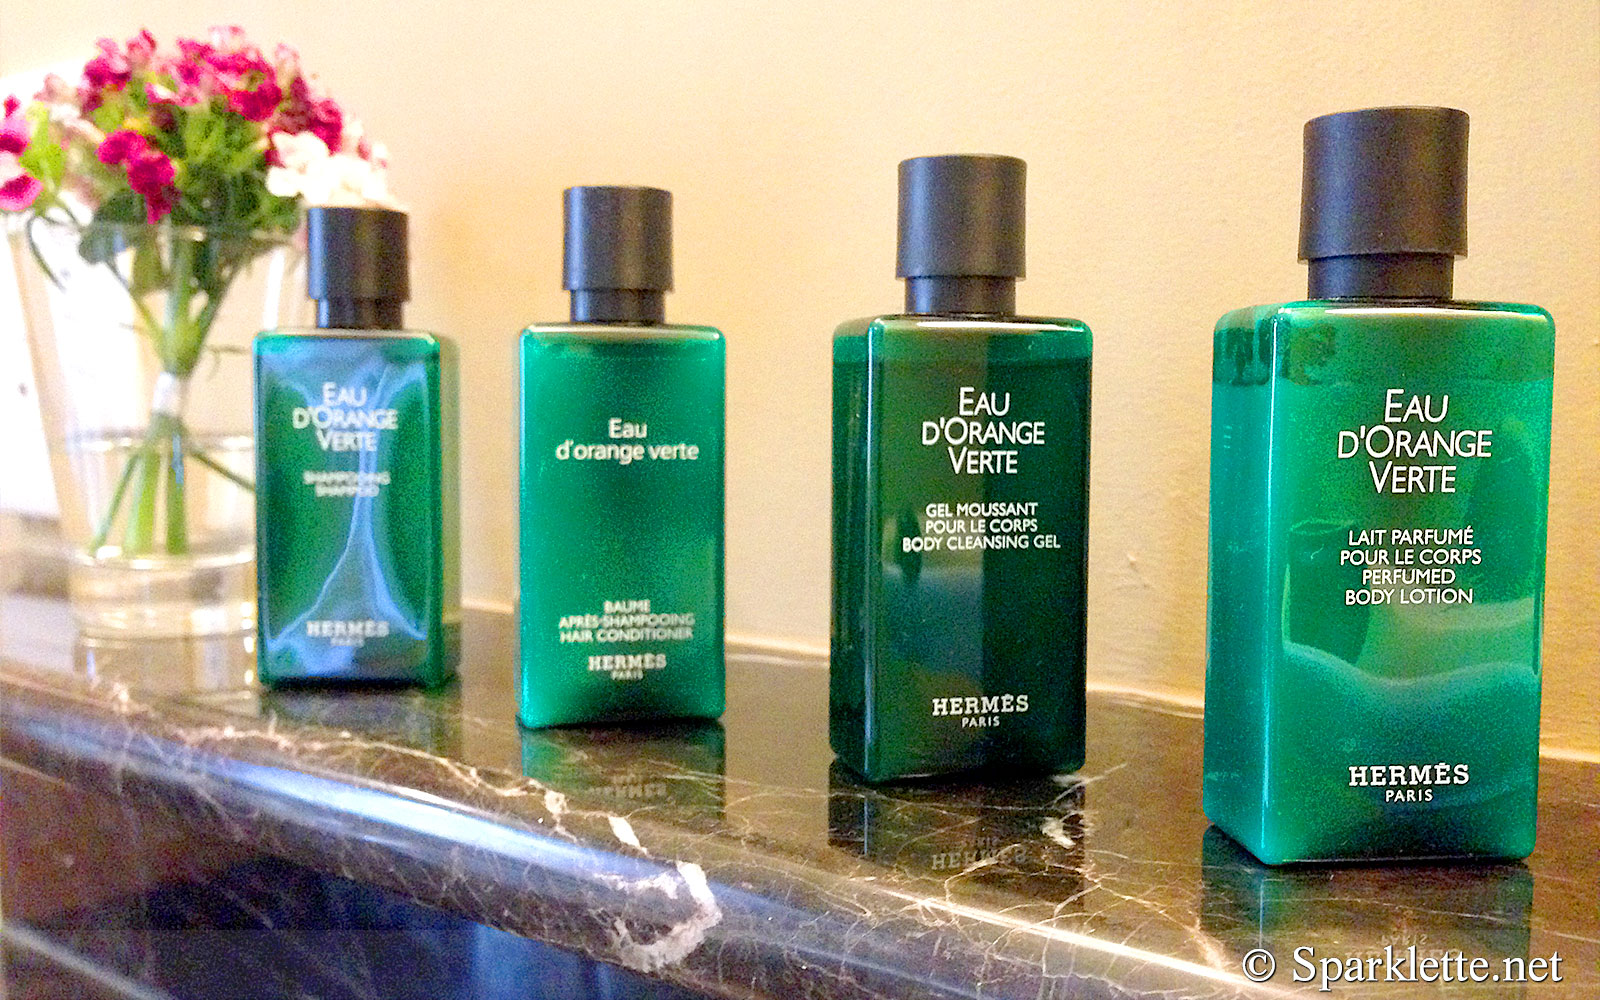 Hermes Bath Products